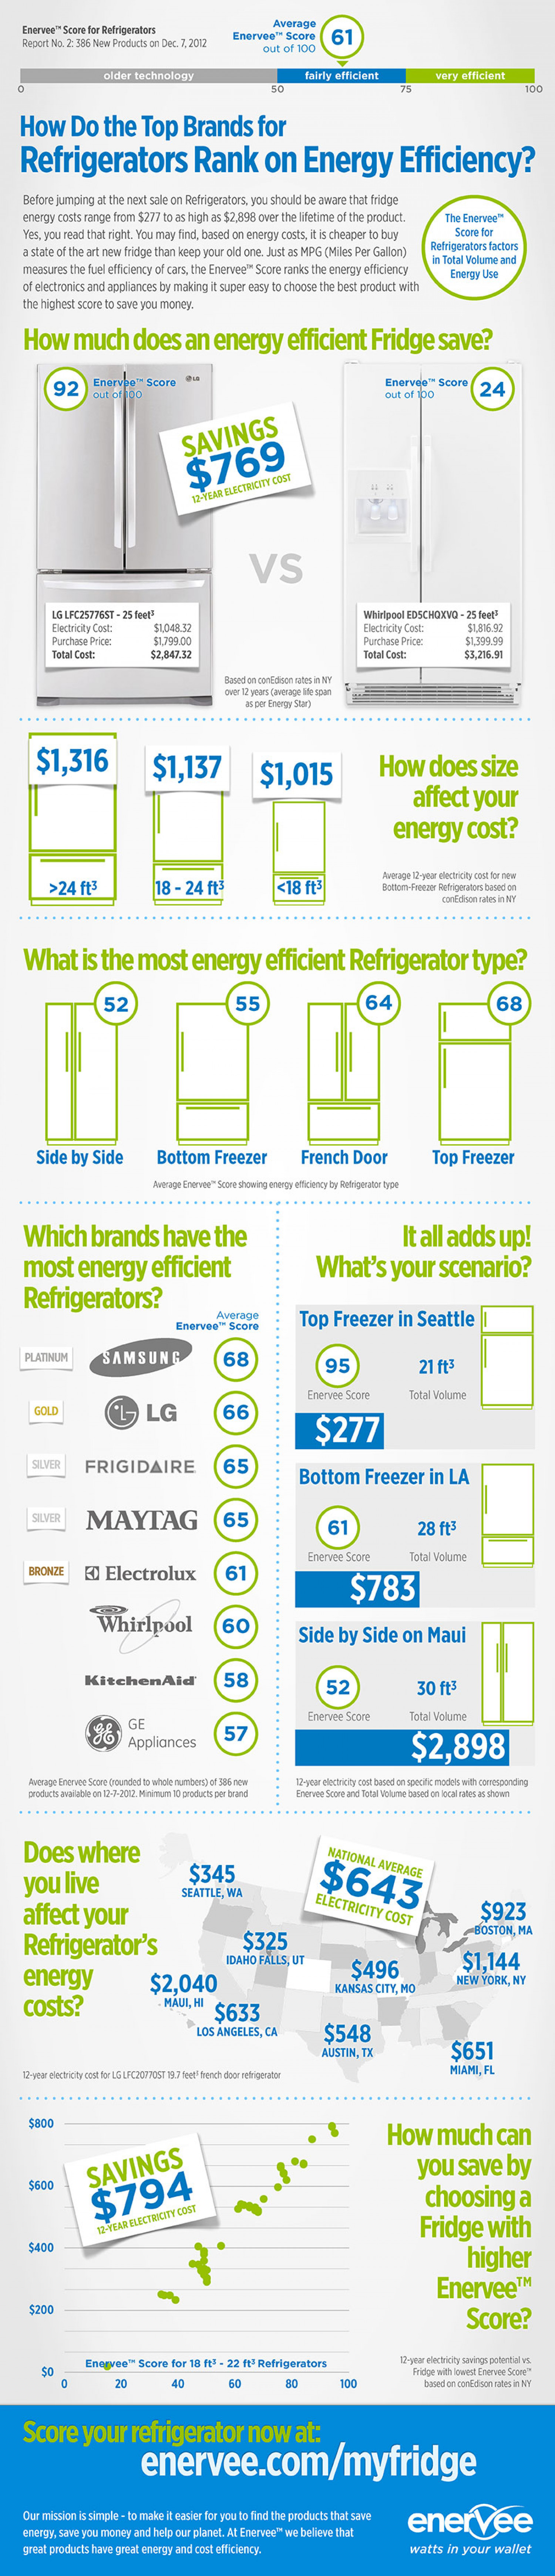 How Do the Top Brands for Refrigerators Rank on Energy Efficiency? Infographic